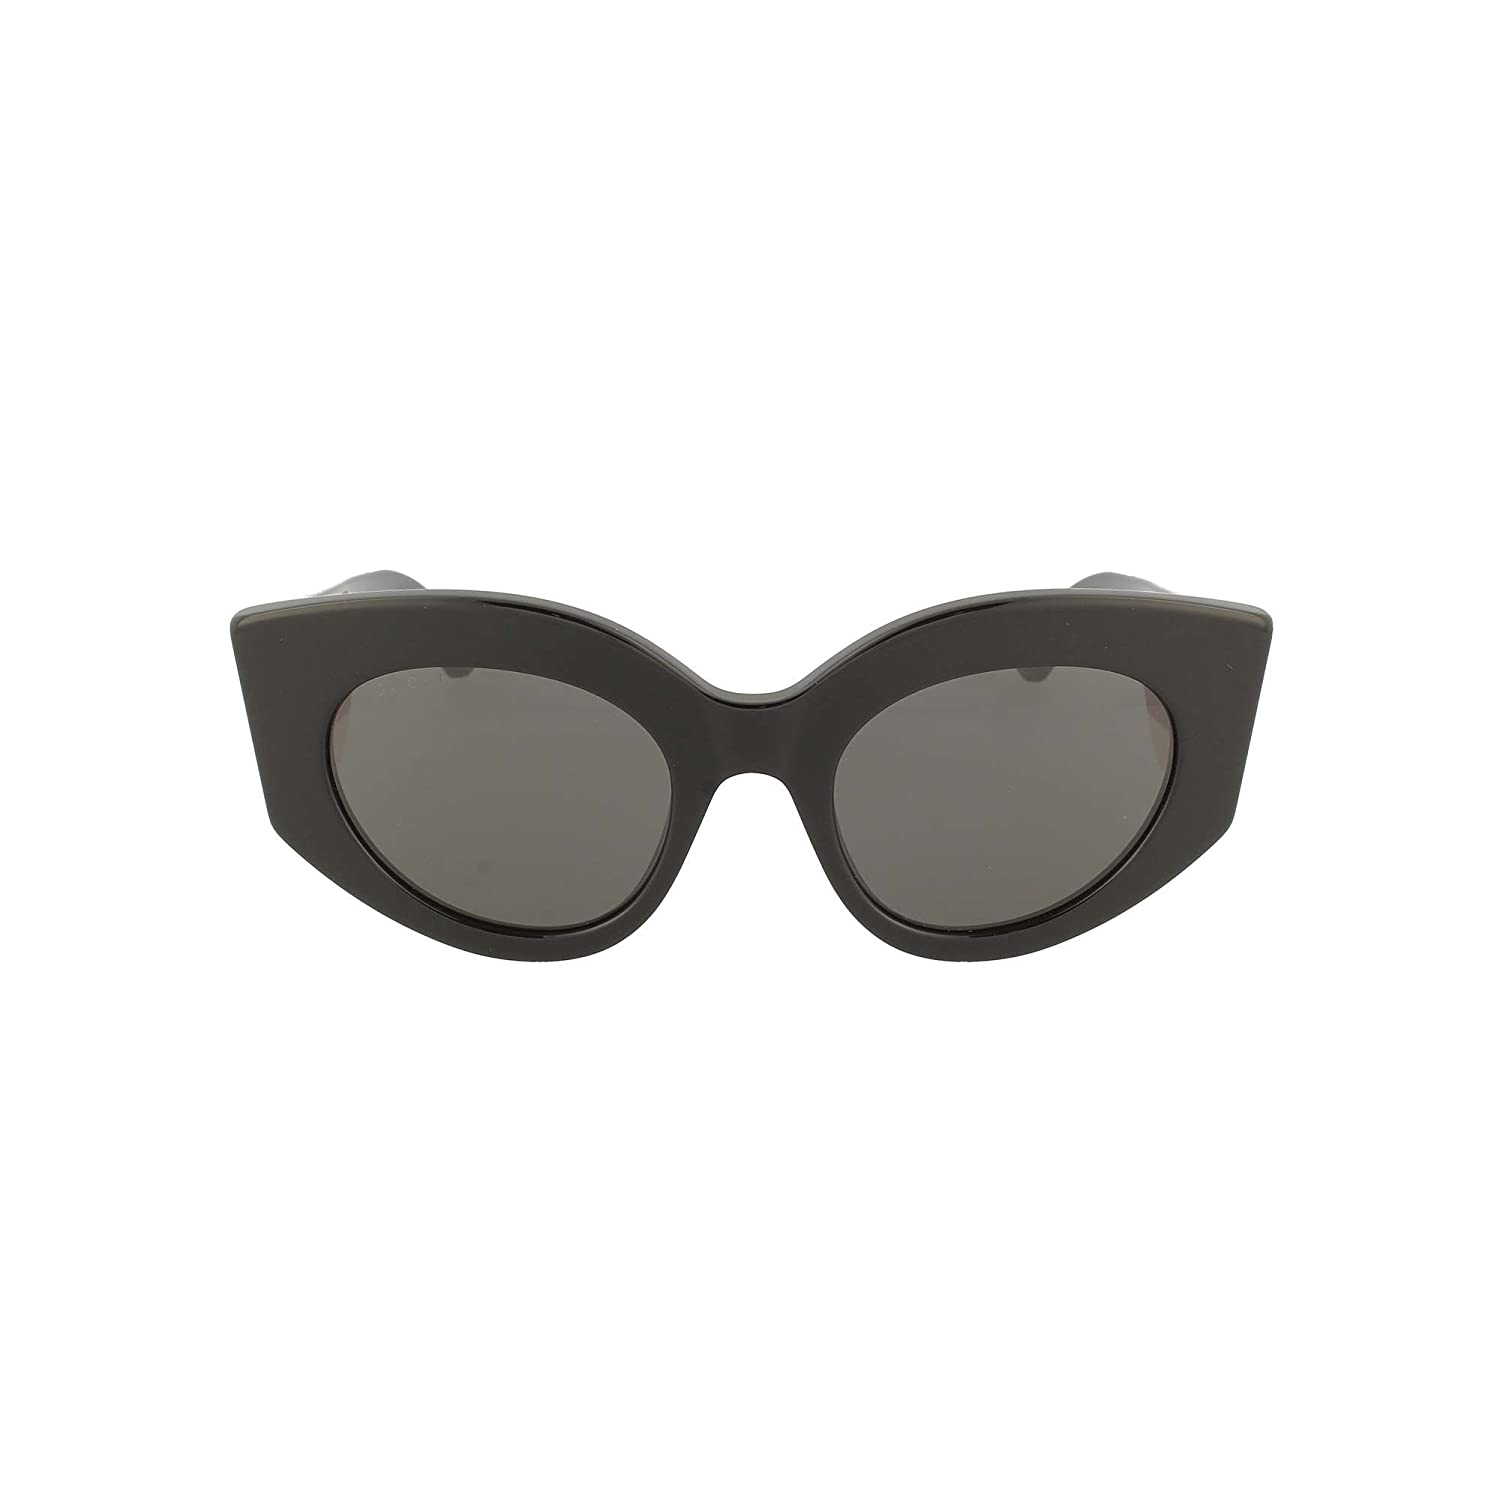 f9252a6d4e1 Amazon.com  Gucci GG0275S 001 Black GG0275S Oval Sunglasses Lens Category 3  Size 50mm  Gucci  Clothing